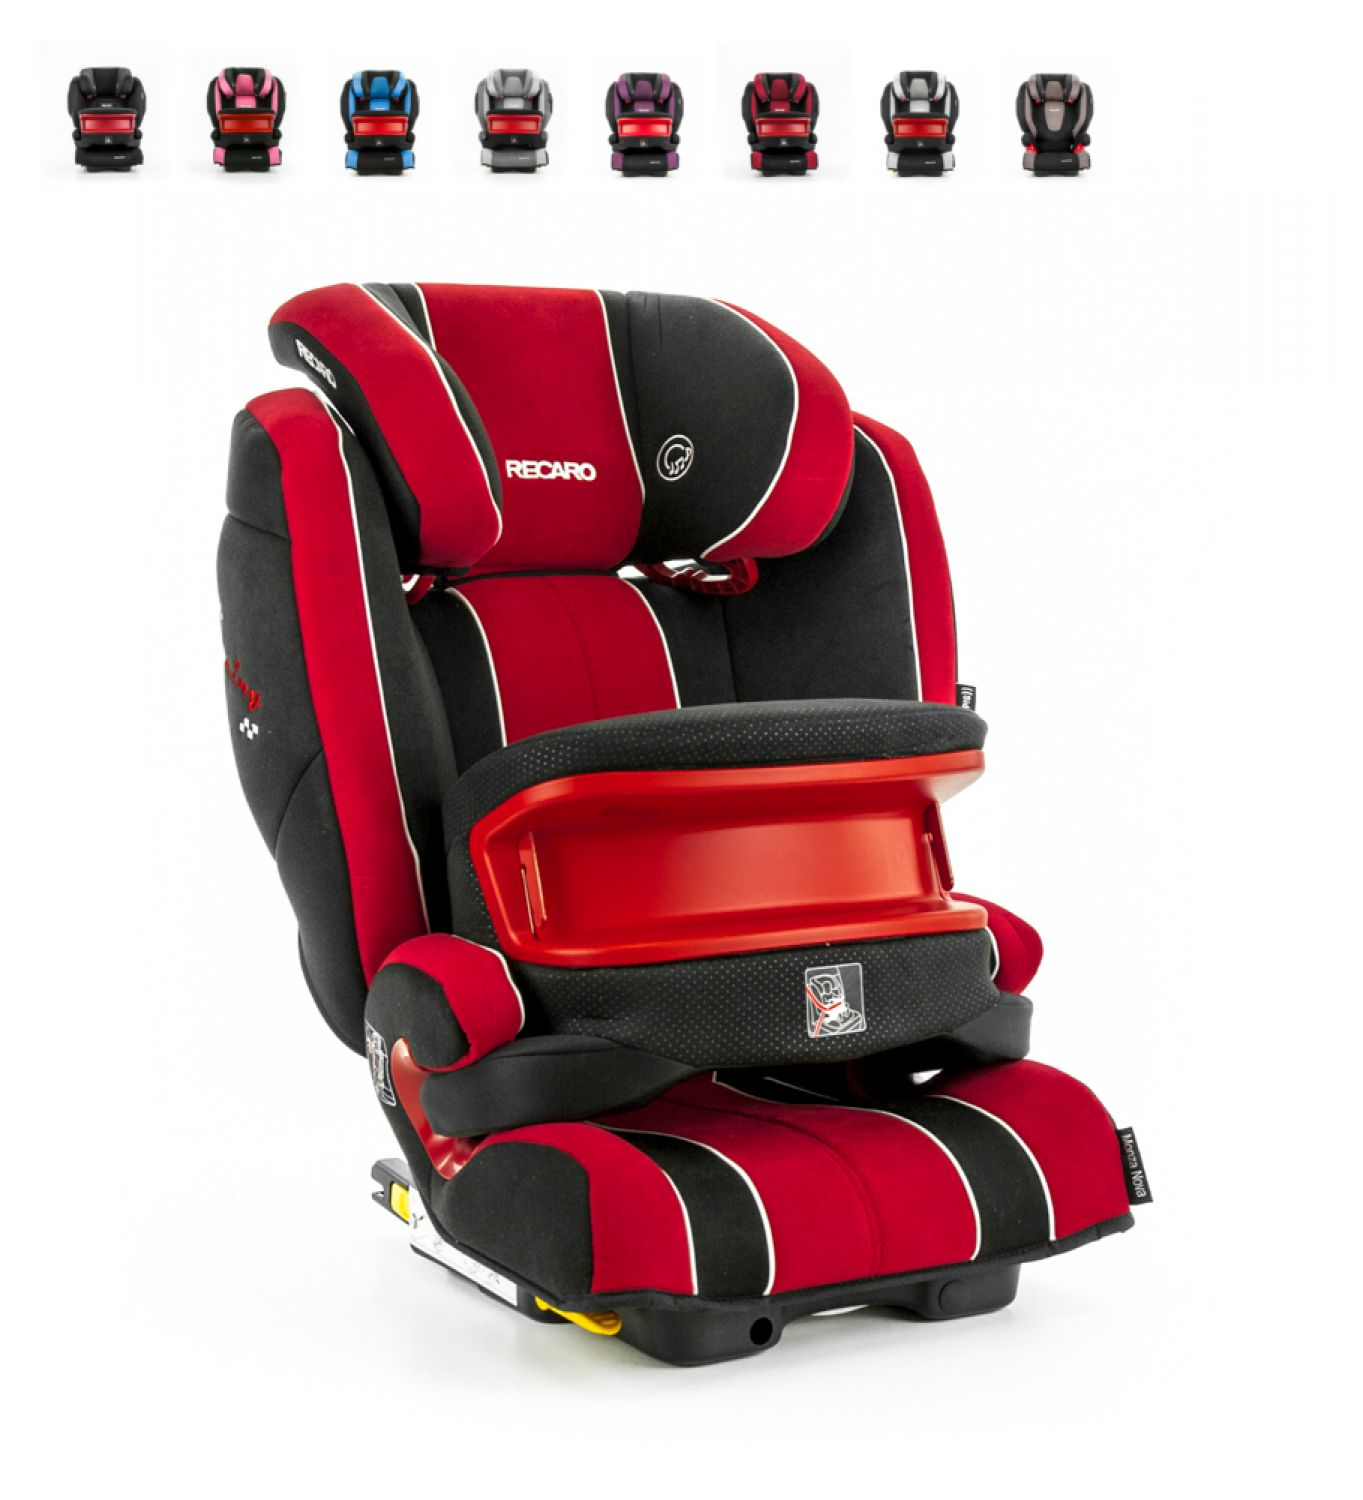 recaro autositz monza nova is seatfix isofix kindersitz 9 36kg testnote 2 0 ebay. Black Bedroom Furniture Sets. Home Design Ideas